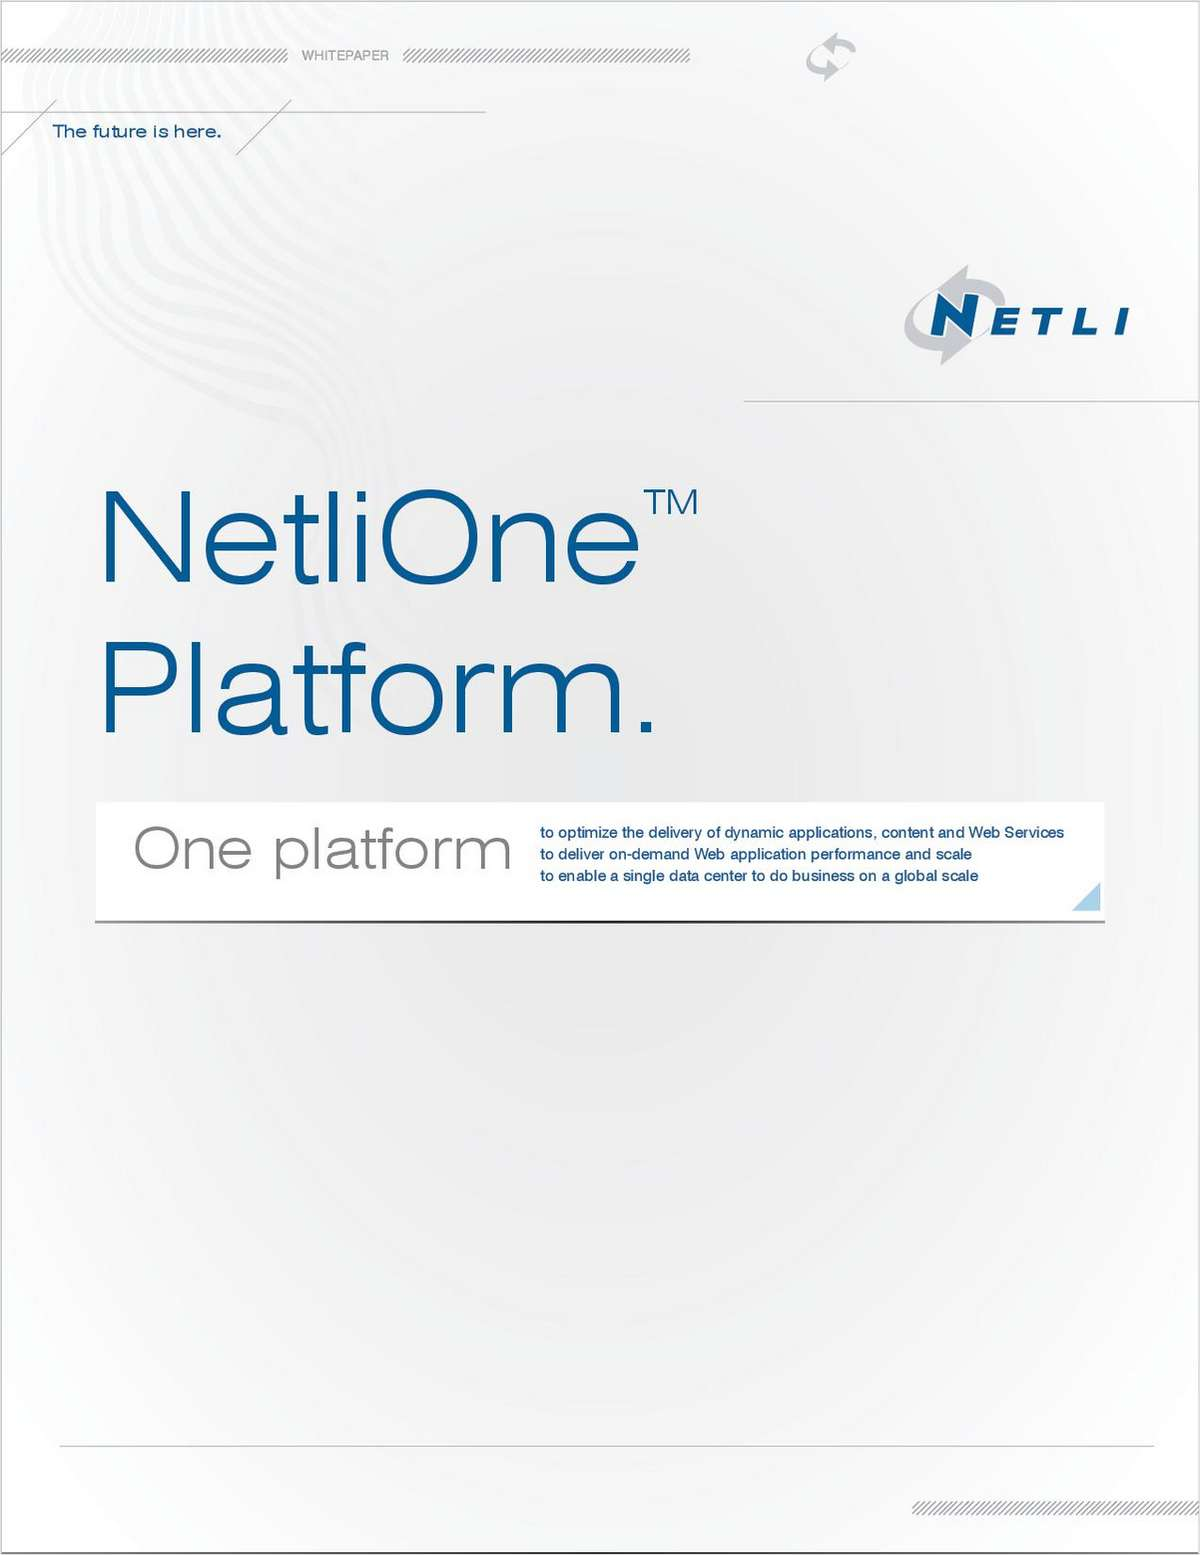 Accelerate the Delivery of Web-Enabled Applications